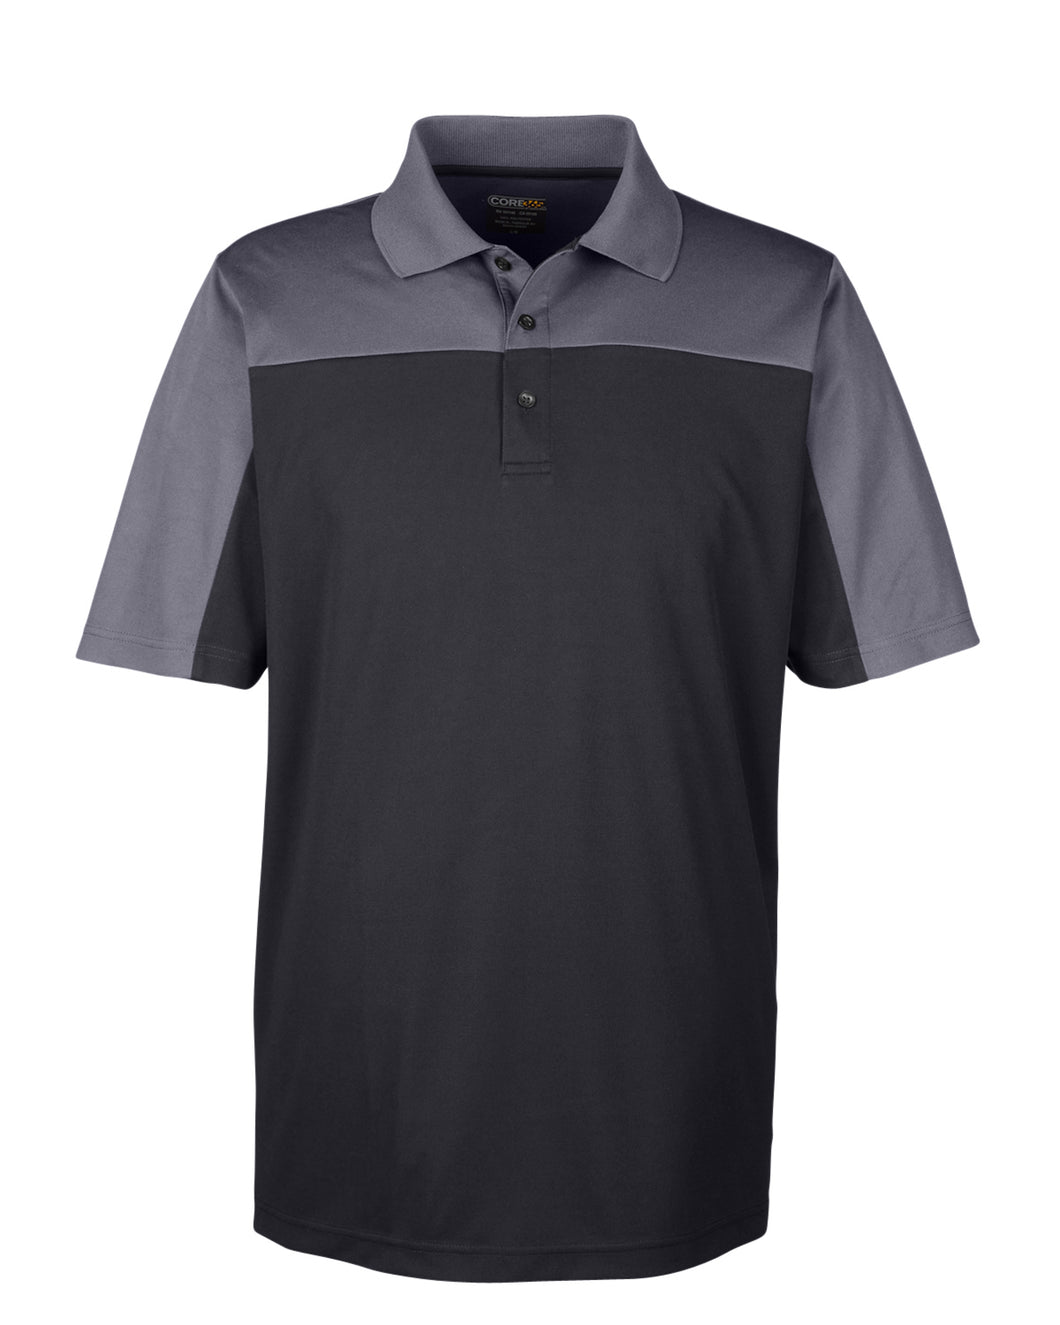 Ash City - Core 365 Men's Balance Colorblock Performance Piqué Polo. CE101